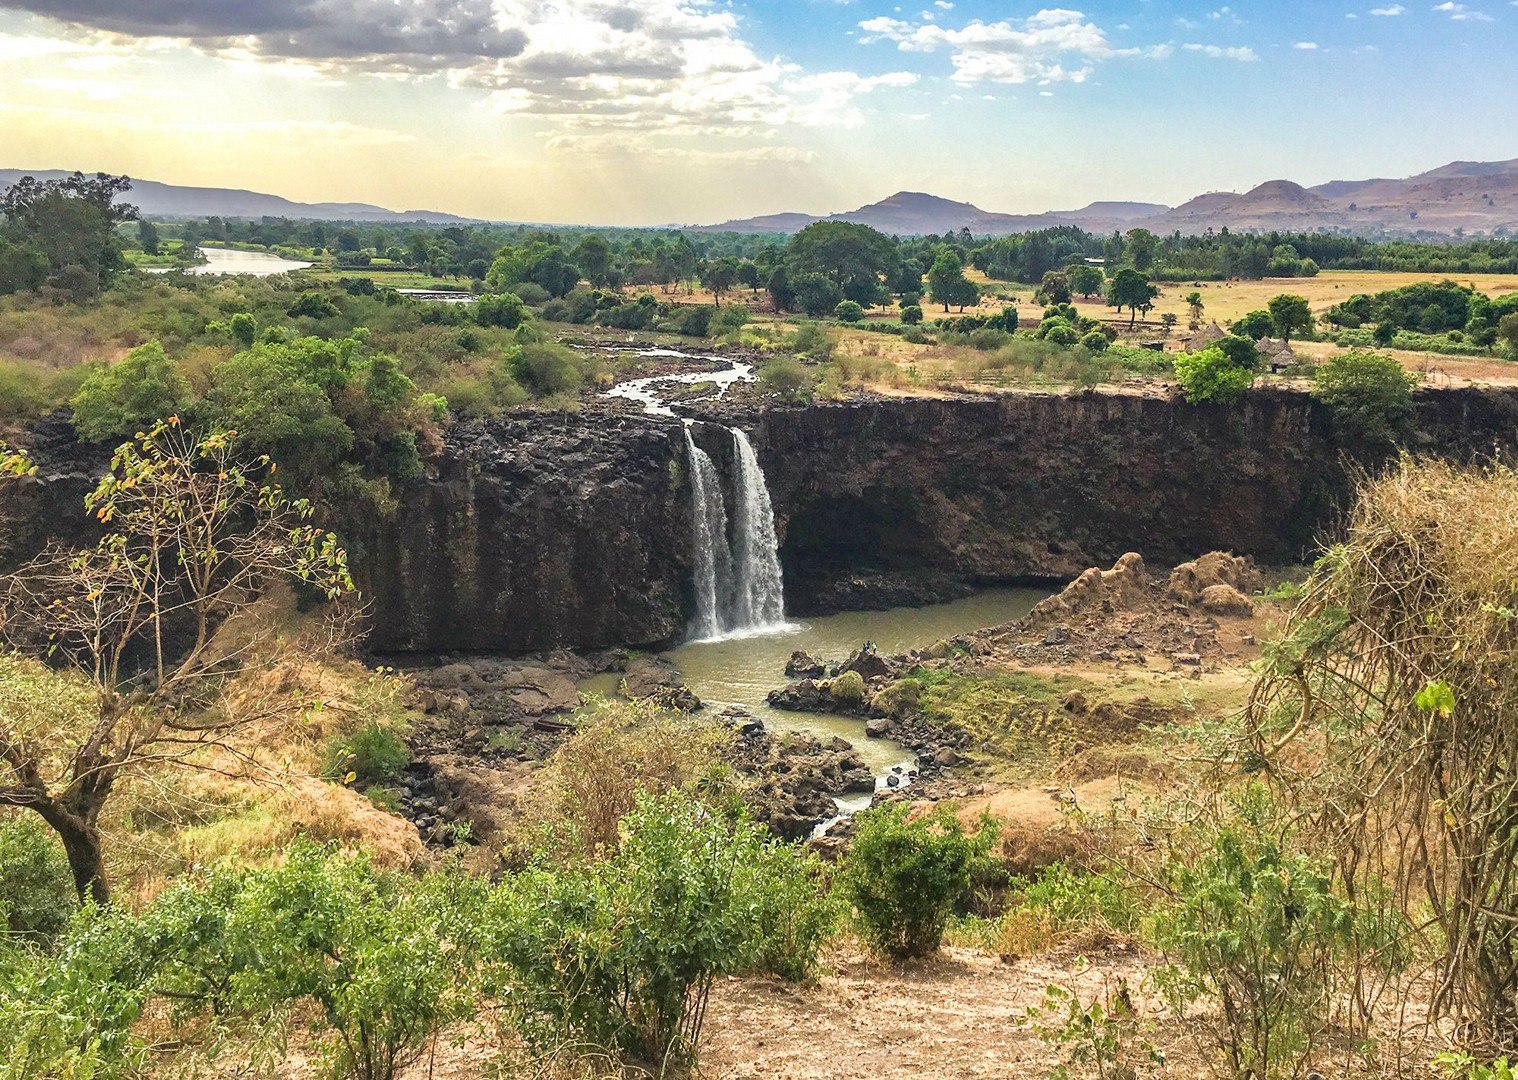 waterfall-ethiopia-cycling-adventure-saddle-skedaddle-holiday.jpg - NEW! Ethiopia - Enchanting Ethiopia - Cycling Adventures